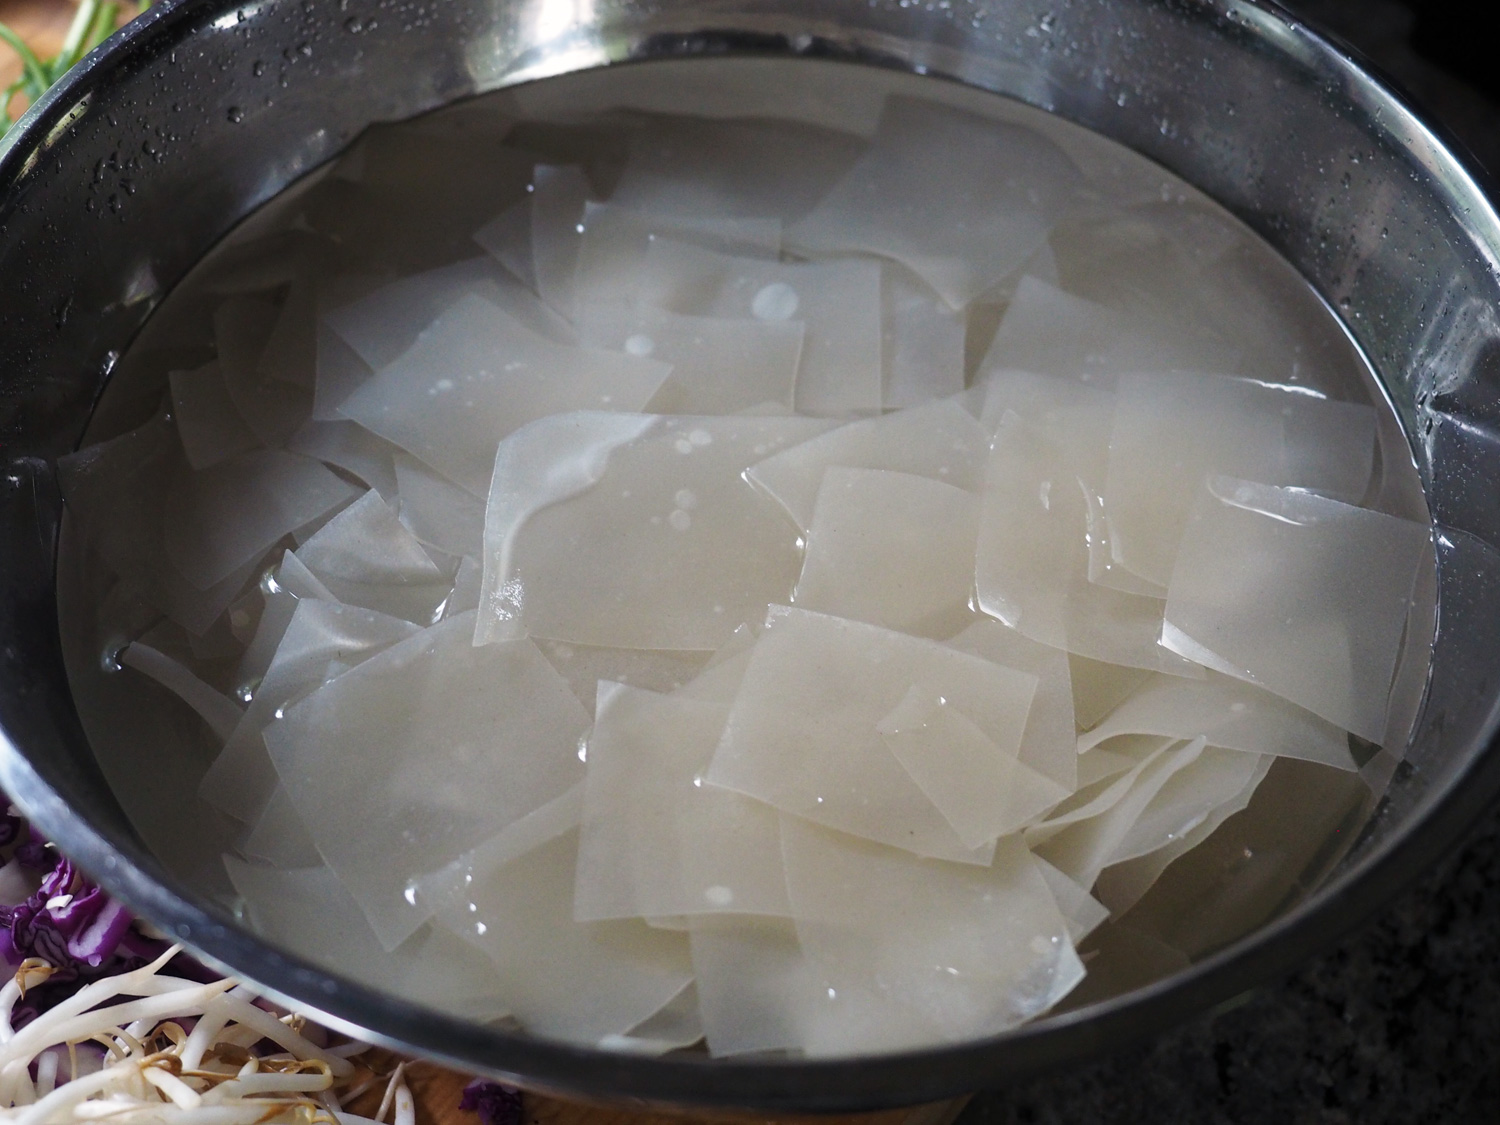 Rice noodle rags soaking in warm water.